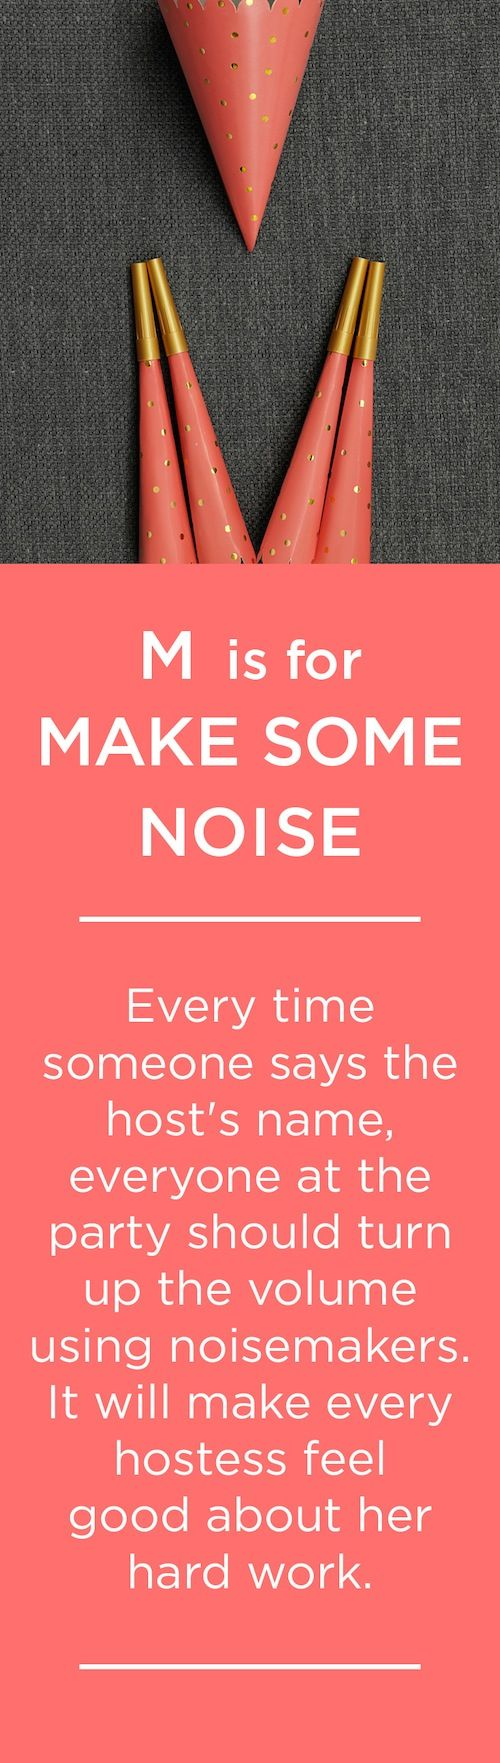 M is for MAKE SOME NOISE